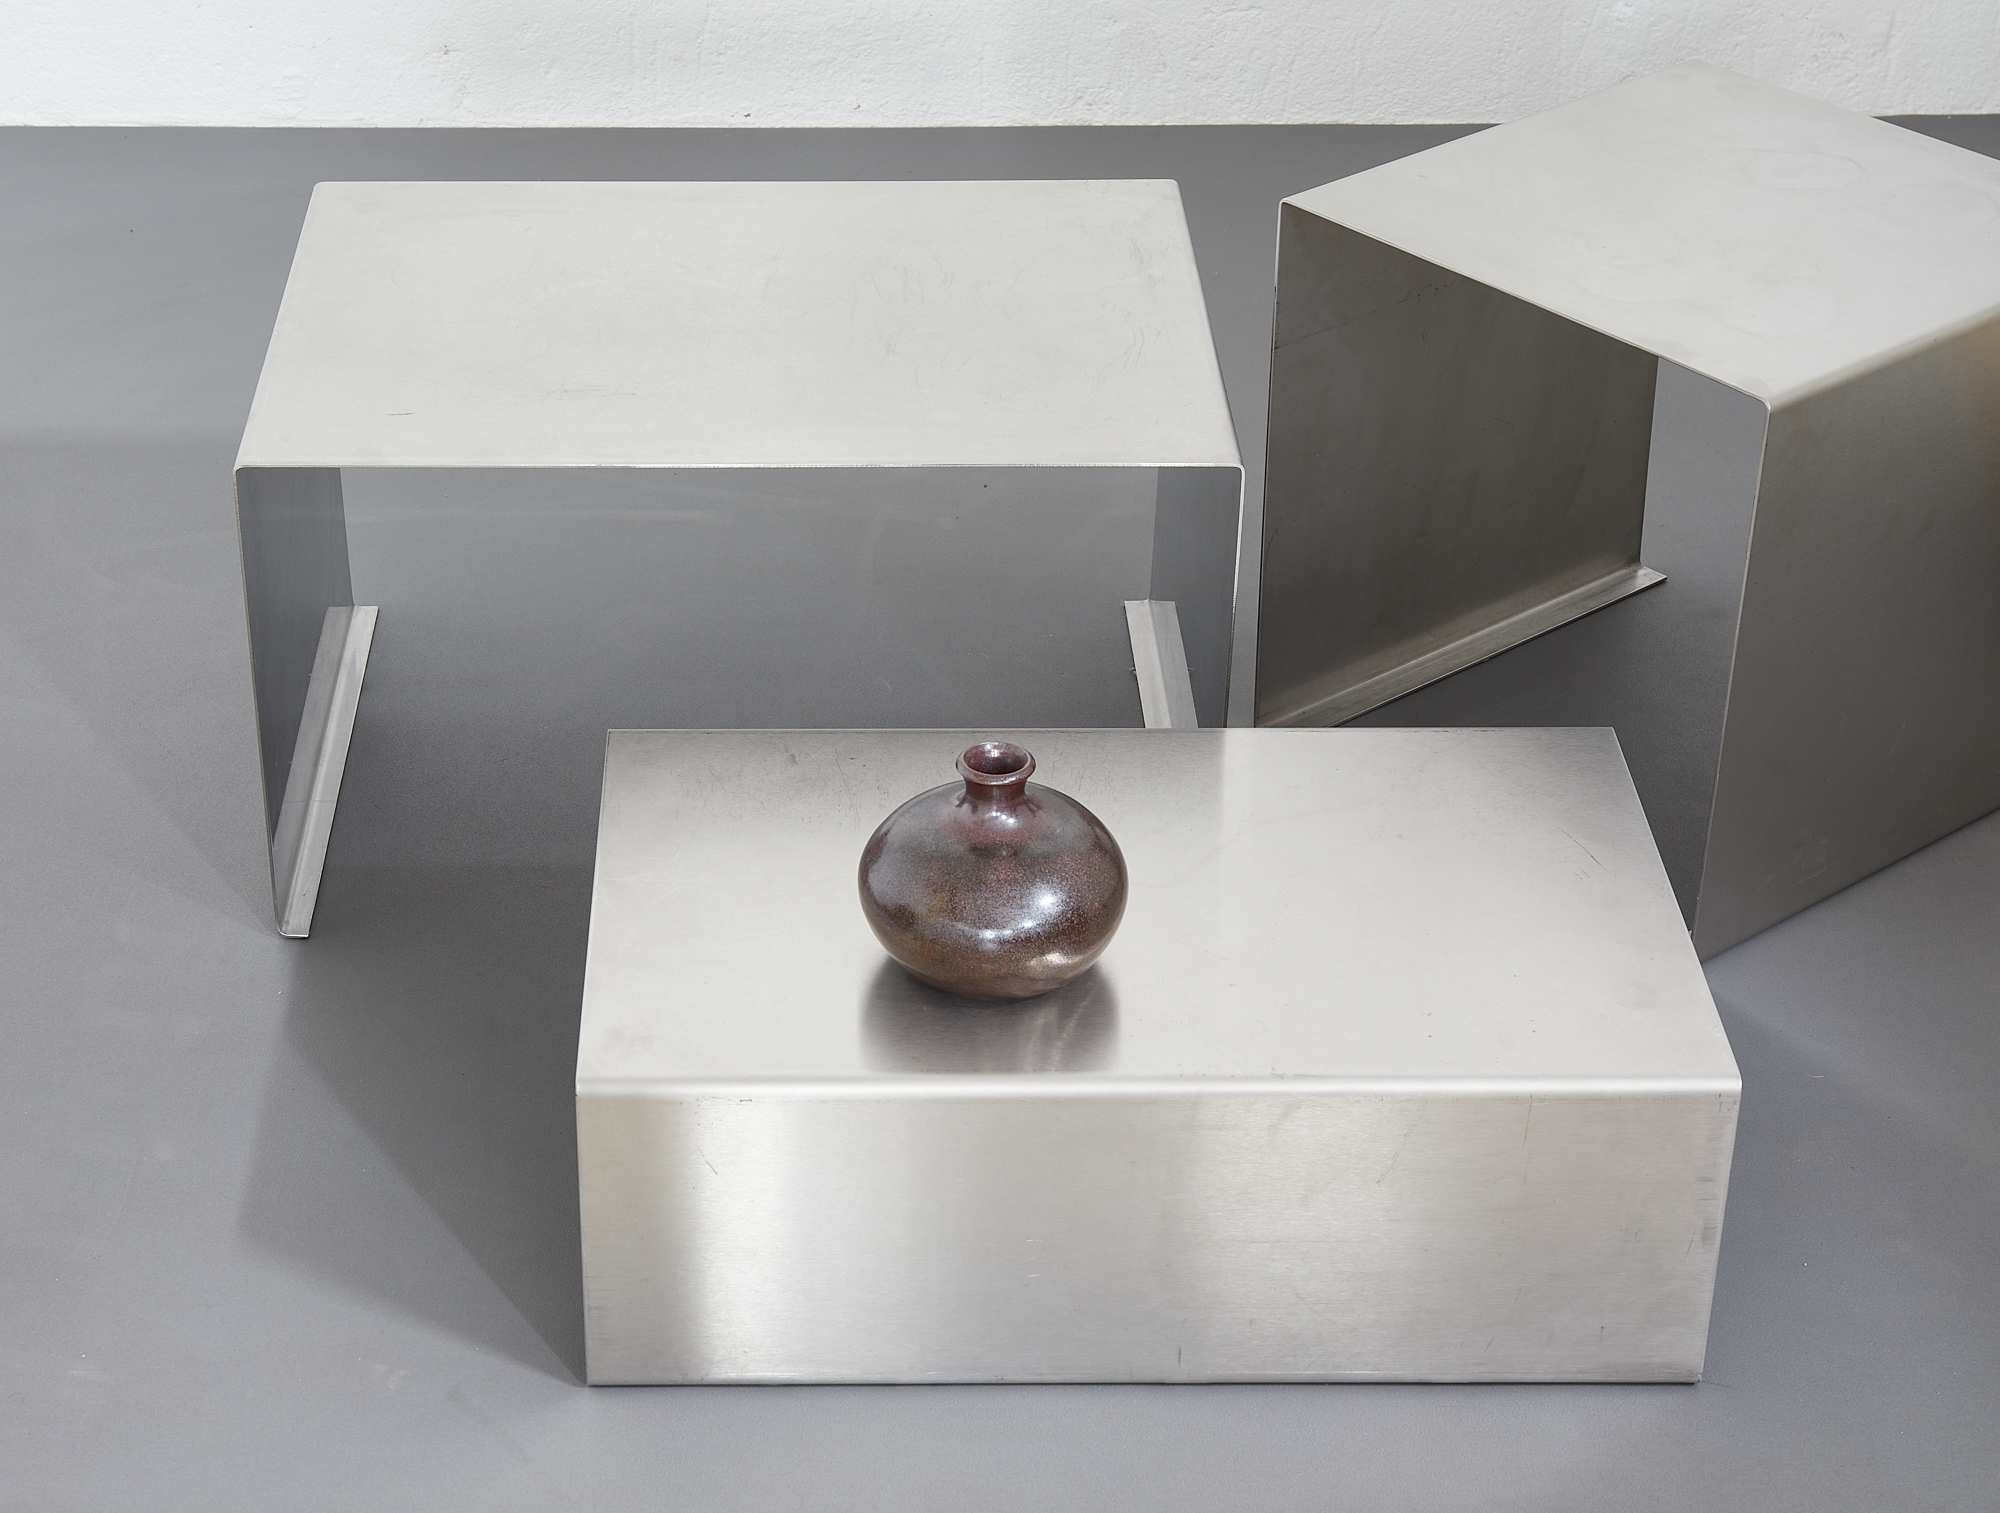 set-of-low-tables-in-brushed-metal-1970-1980-image-01